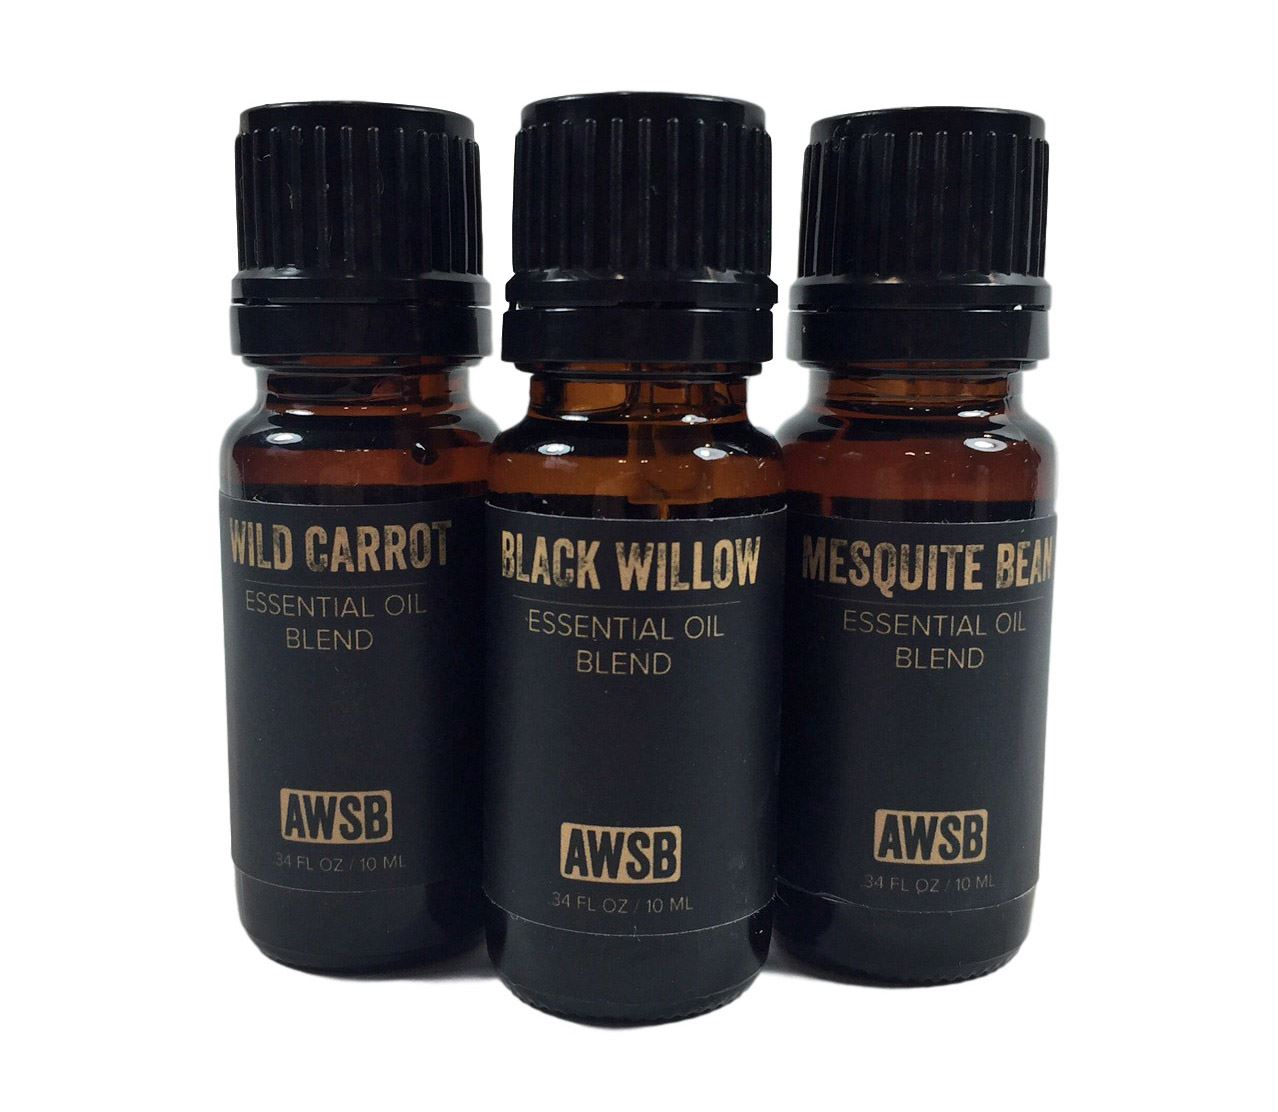 essential oil blend aromatherapy,essential oil,essential oils,essential oil blends,pure,oils